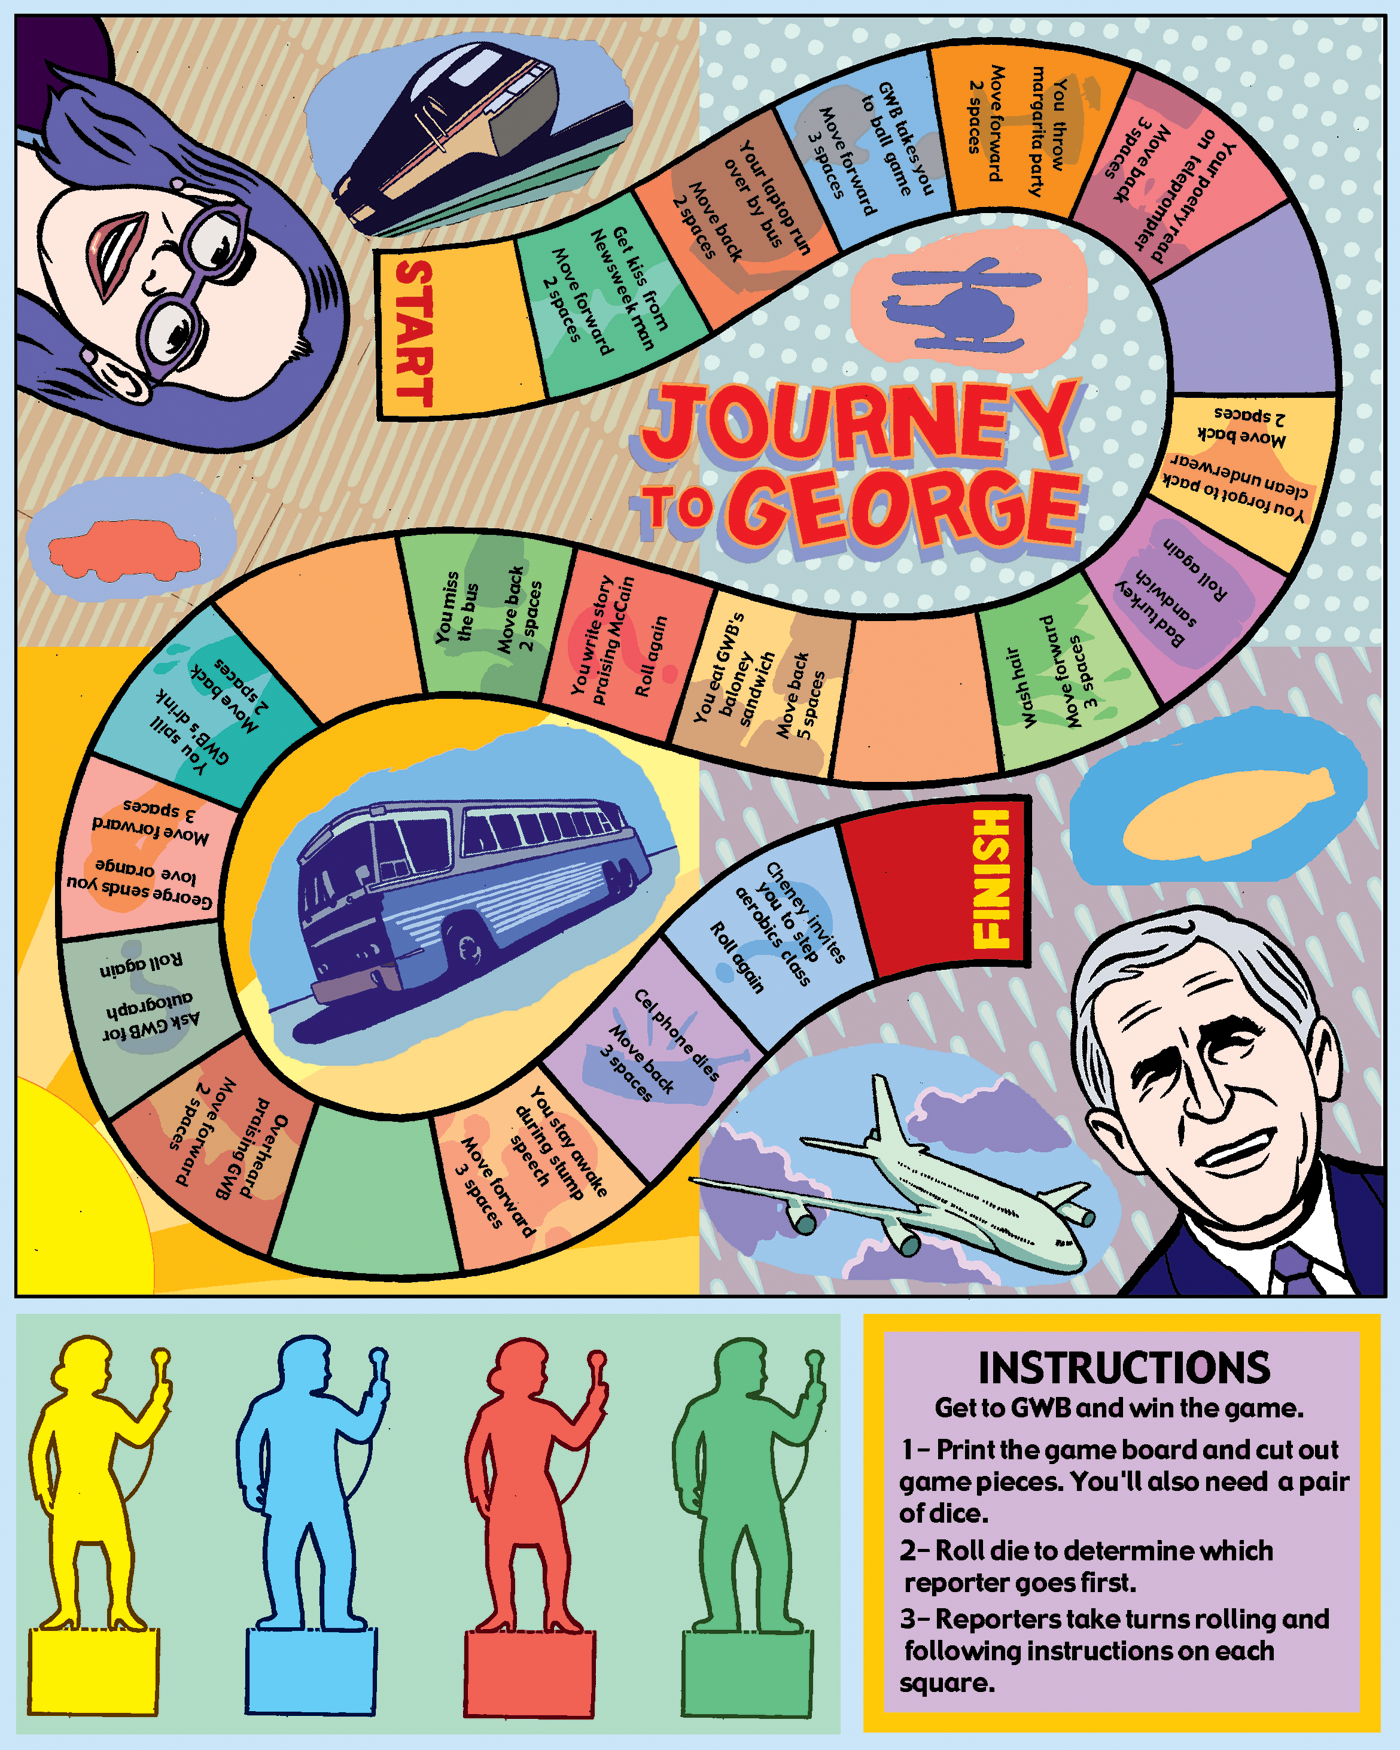 """Journey to George"" board game, HBO, 2000"